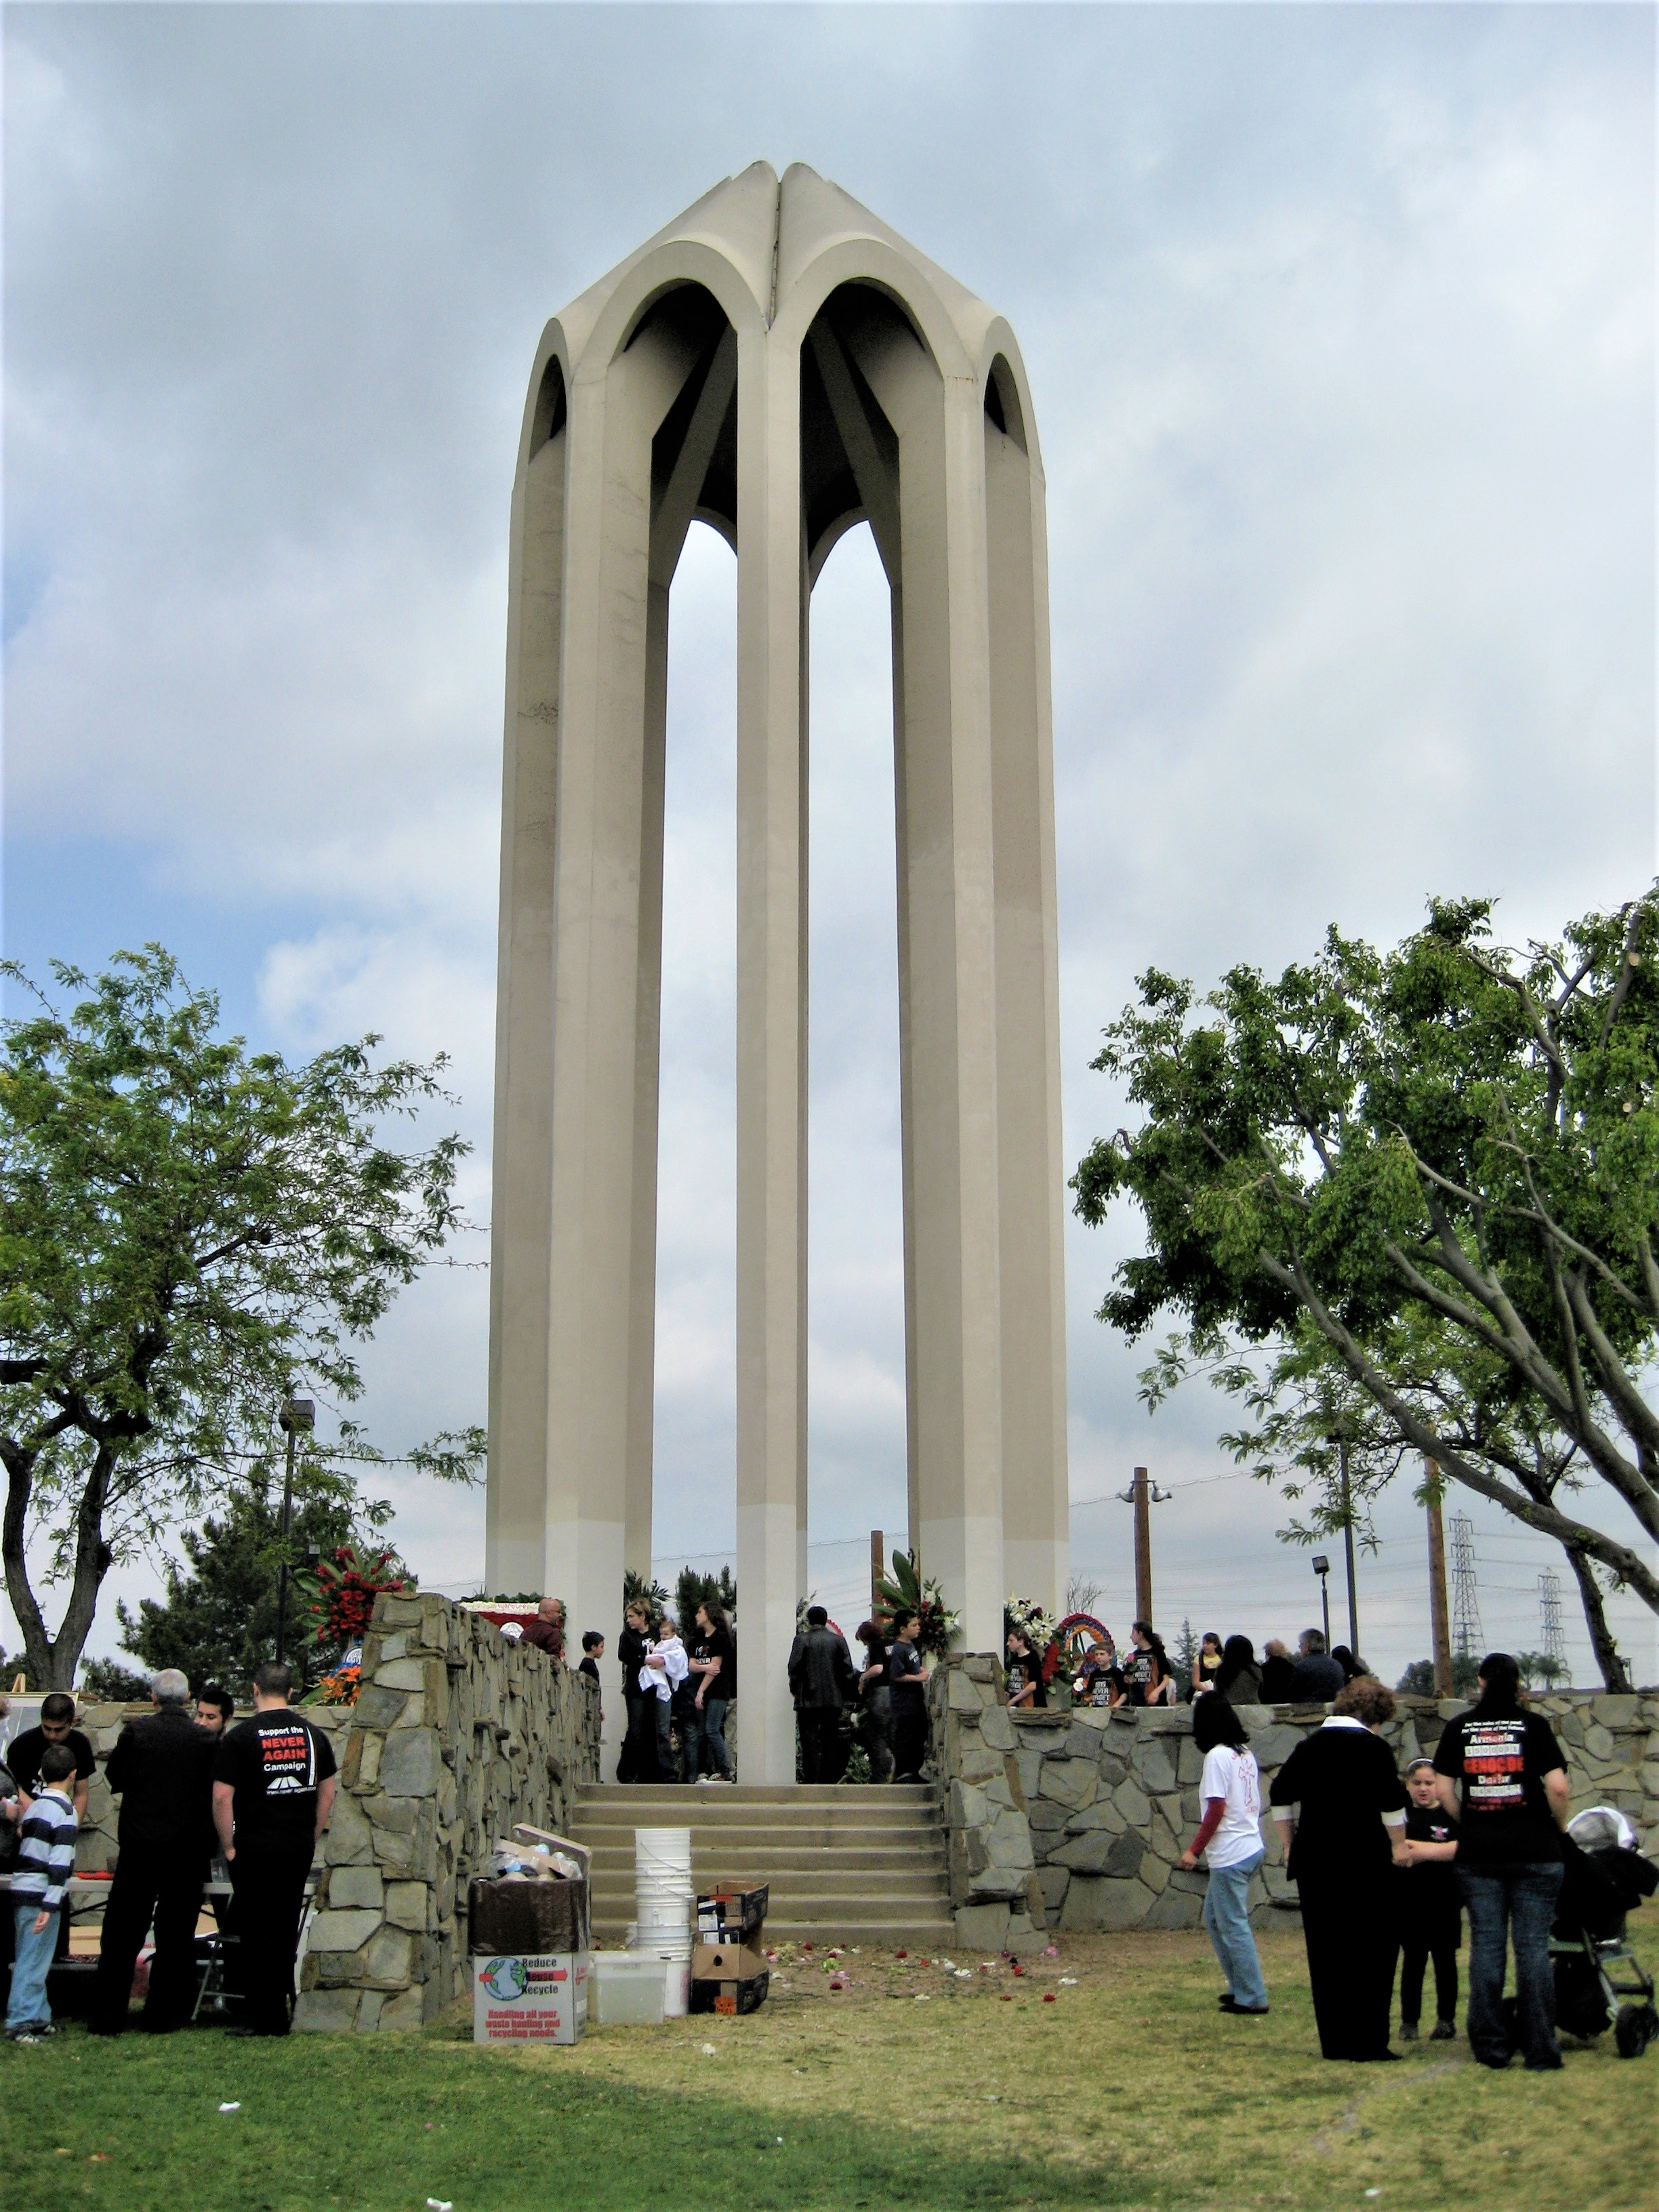 http://upload.wikimedia.org/wikipedia/commons/6/6c/Armenian_Genocide_Memorial,_Montebello,_California.jpg